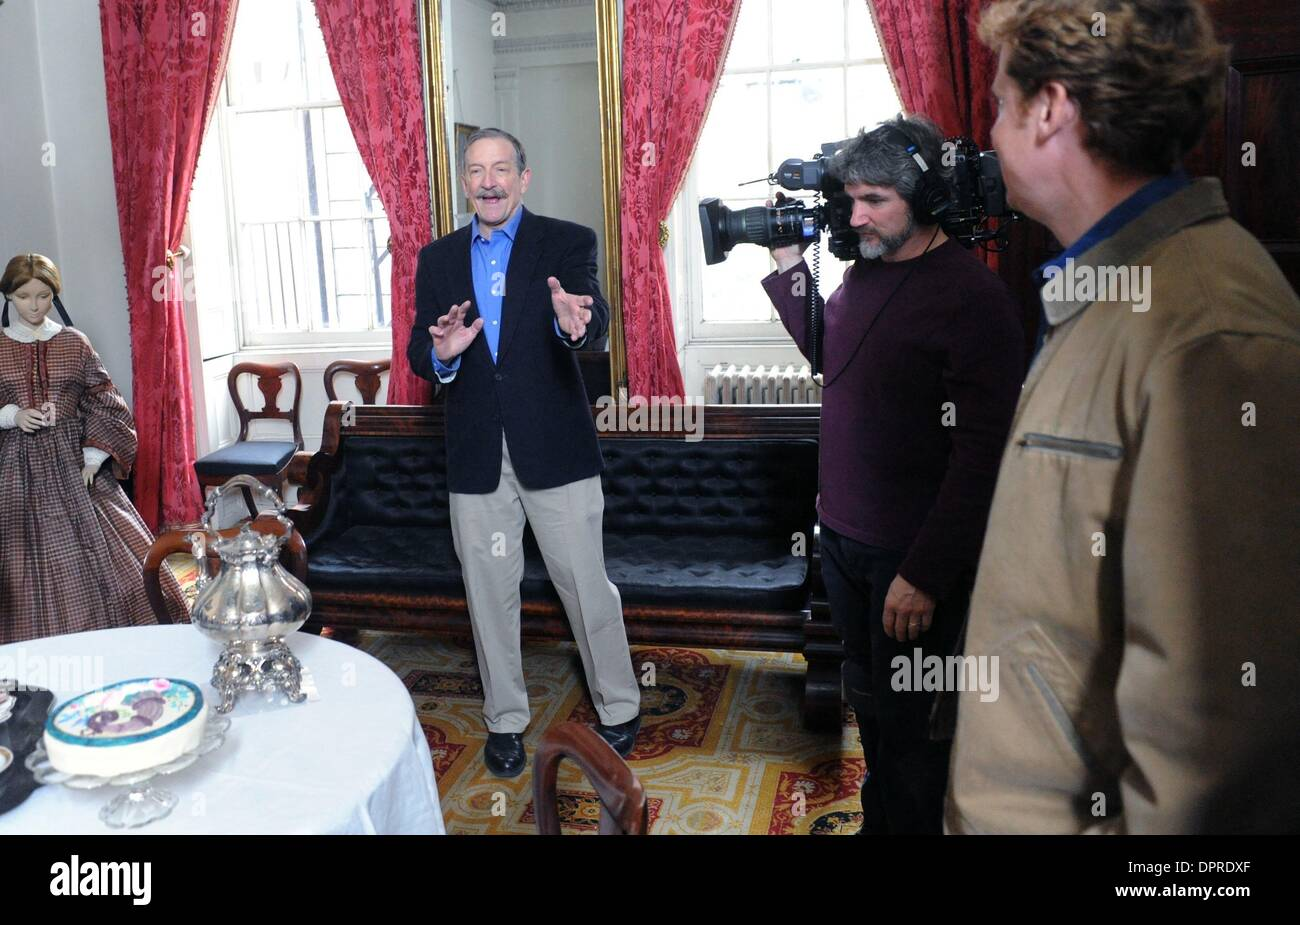 Dec 04, 2008 - Manhattan, New York, USA - CHARLES LOCKWOOD works out a scene as host KEVIN O'CONNOR (R) looks on. 'This Old House' taping with host Kevin O'Connor  and special guest Charles Lockwood at the historic Merchant's House Museum in the East Village.  (Credit Image: © Bryan Smith/ZUMA Press) RESTRICTIONS:  * New York City Newspapers Rights OUT * - Stock Image